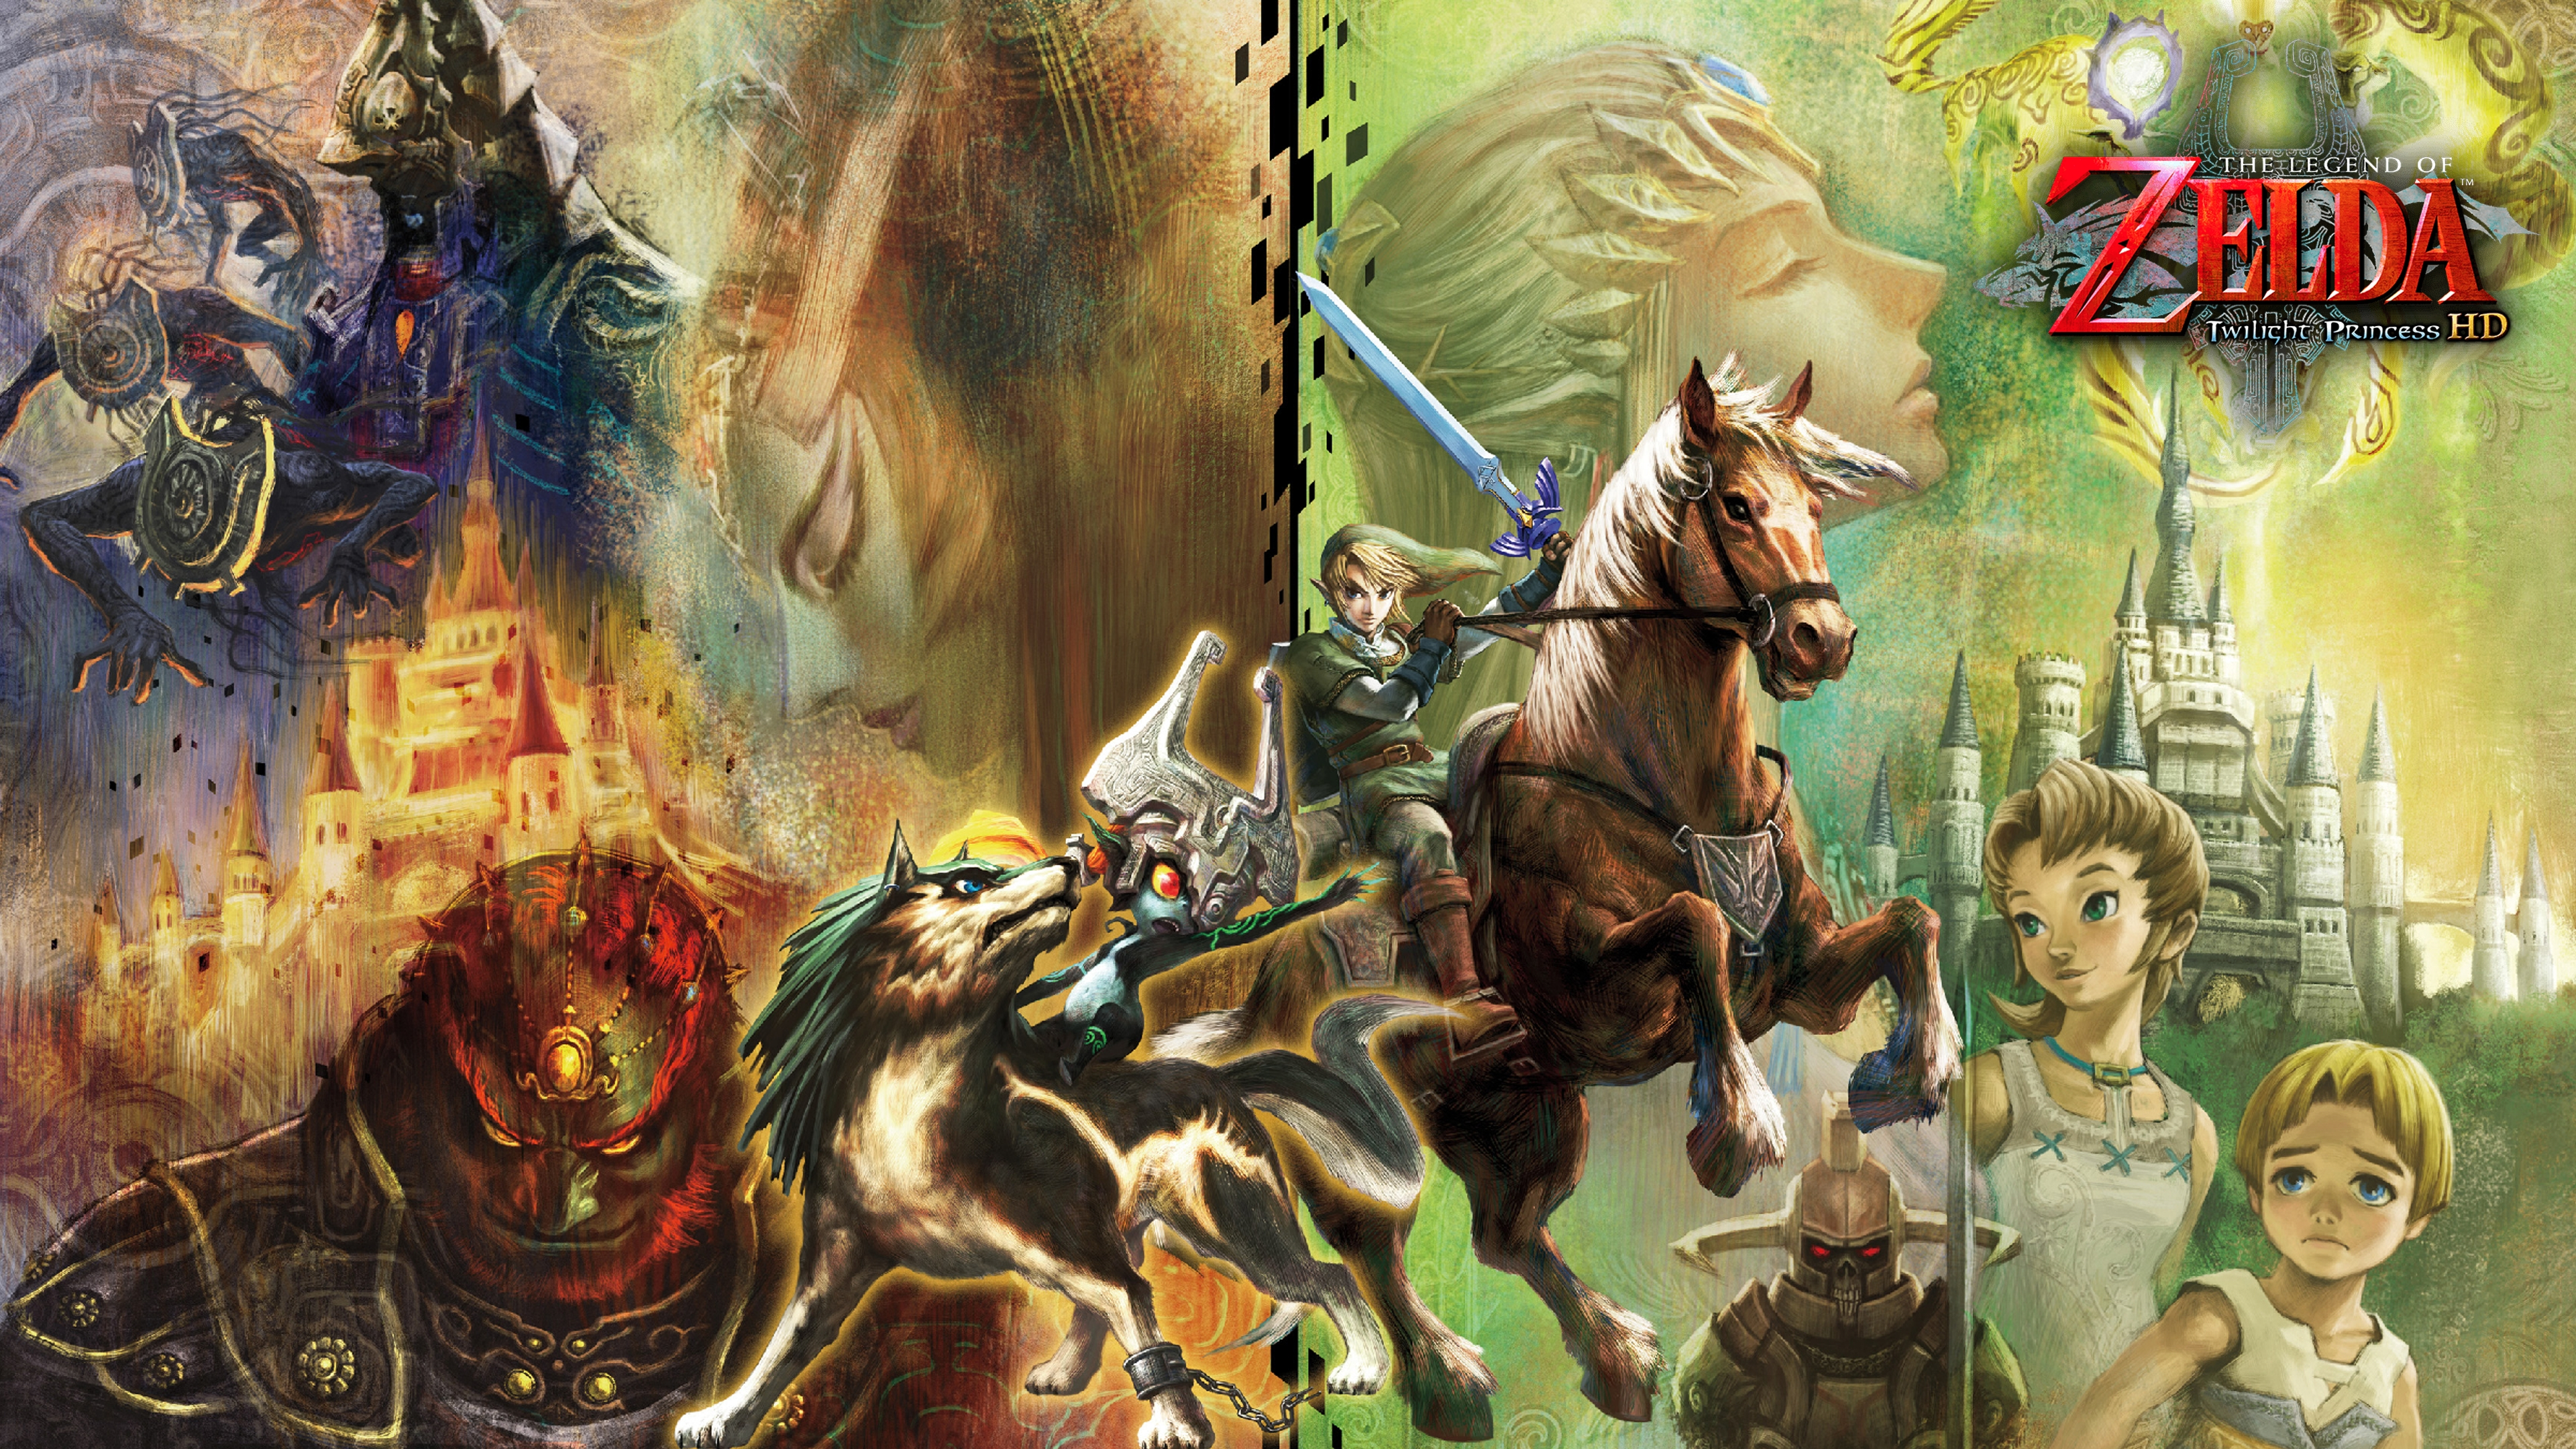 the legend of zelda: twilight princess hd 4k wallpaper 4k ultra hd